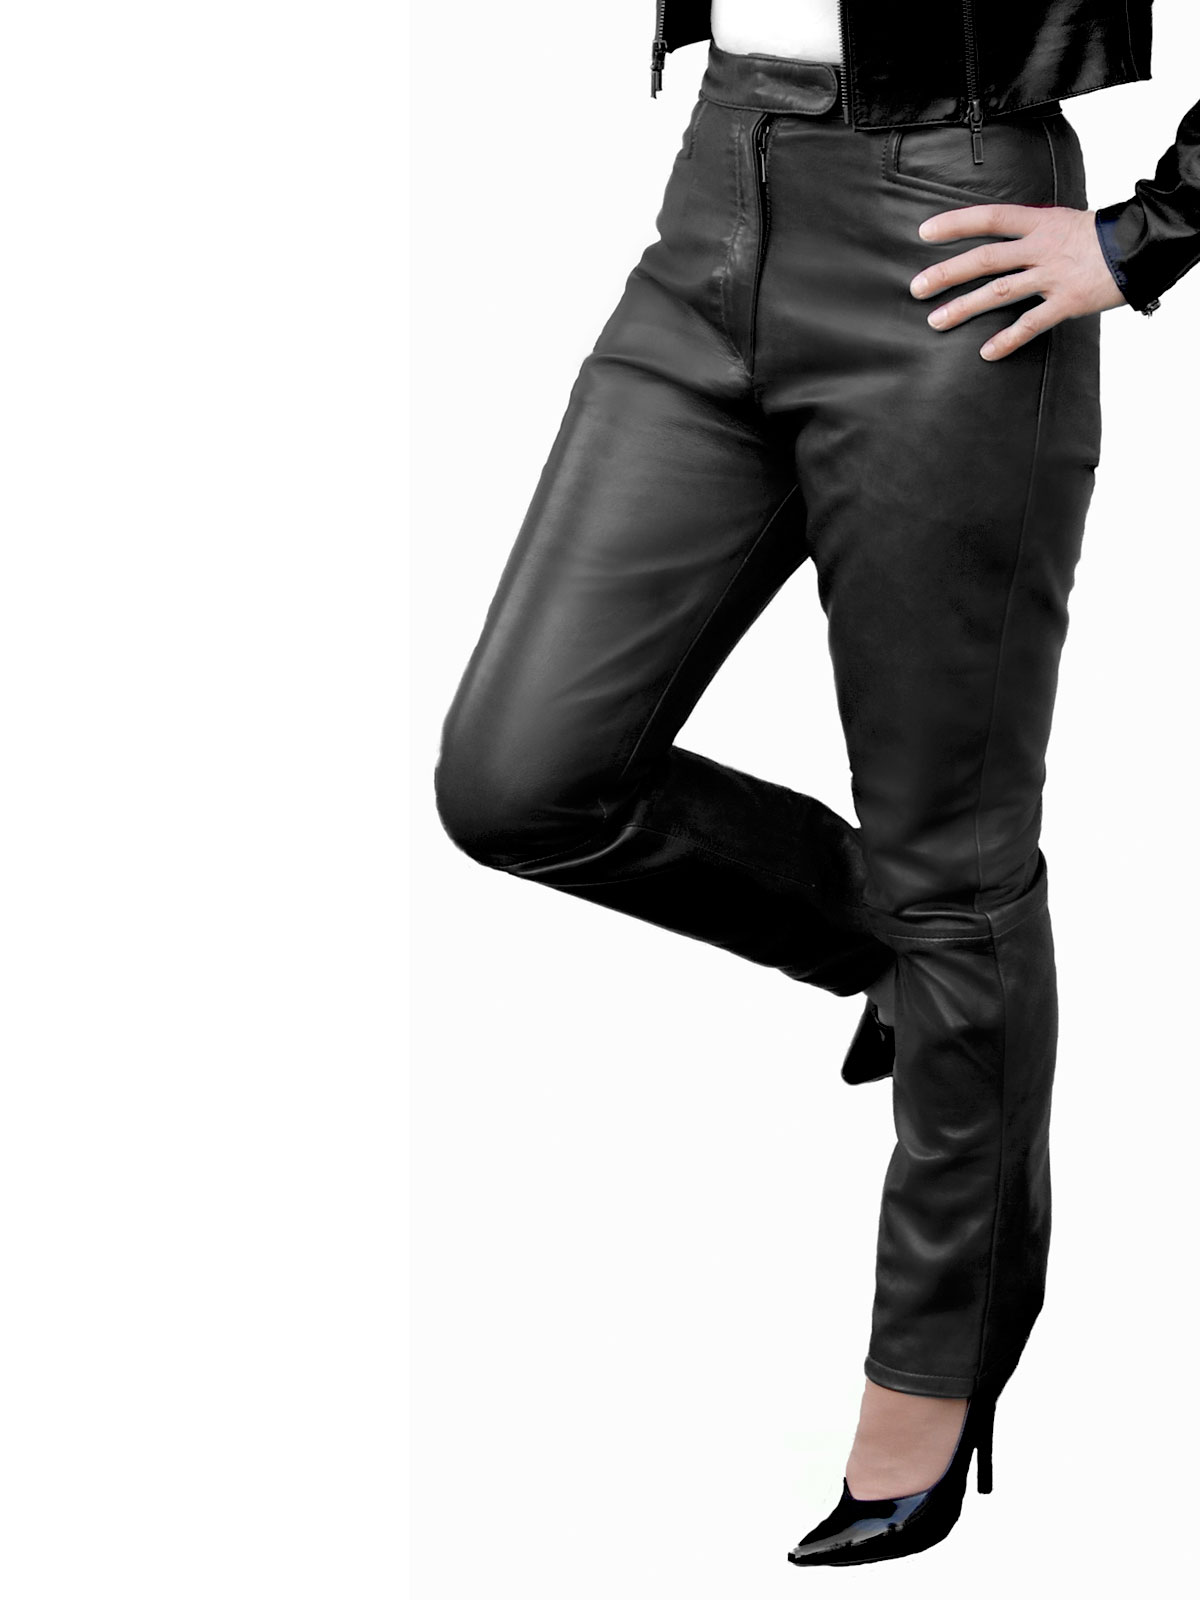 Find leather trousers women uk at ShopStyle. Shop the latest collection of leather trousers women uk from the most popular stores - all in one place.